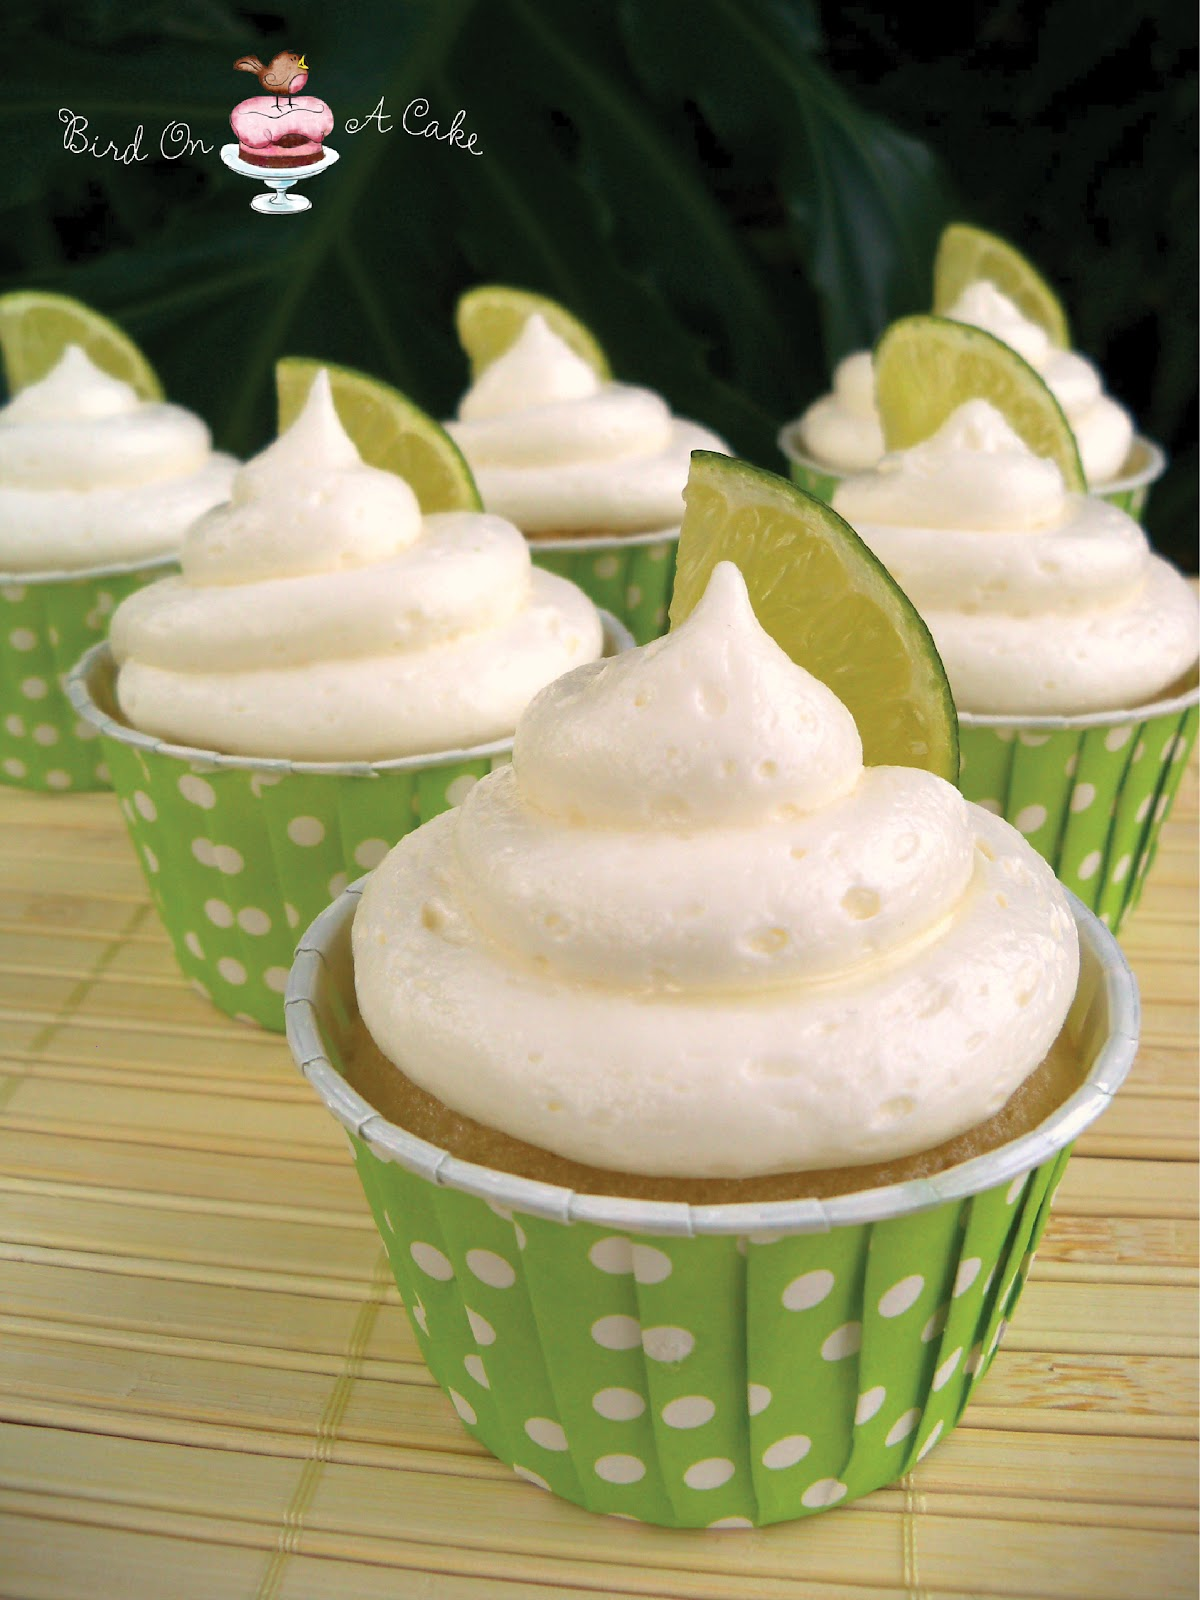 Bird On A Cake: Coconut Lime Cupcakes